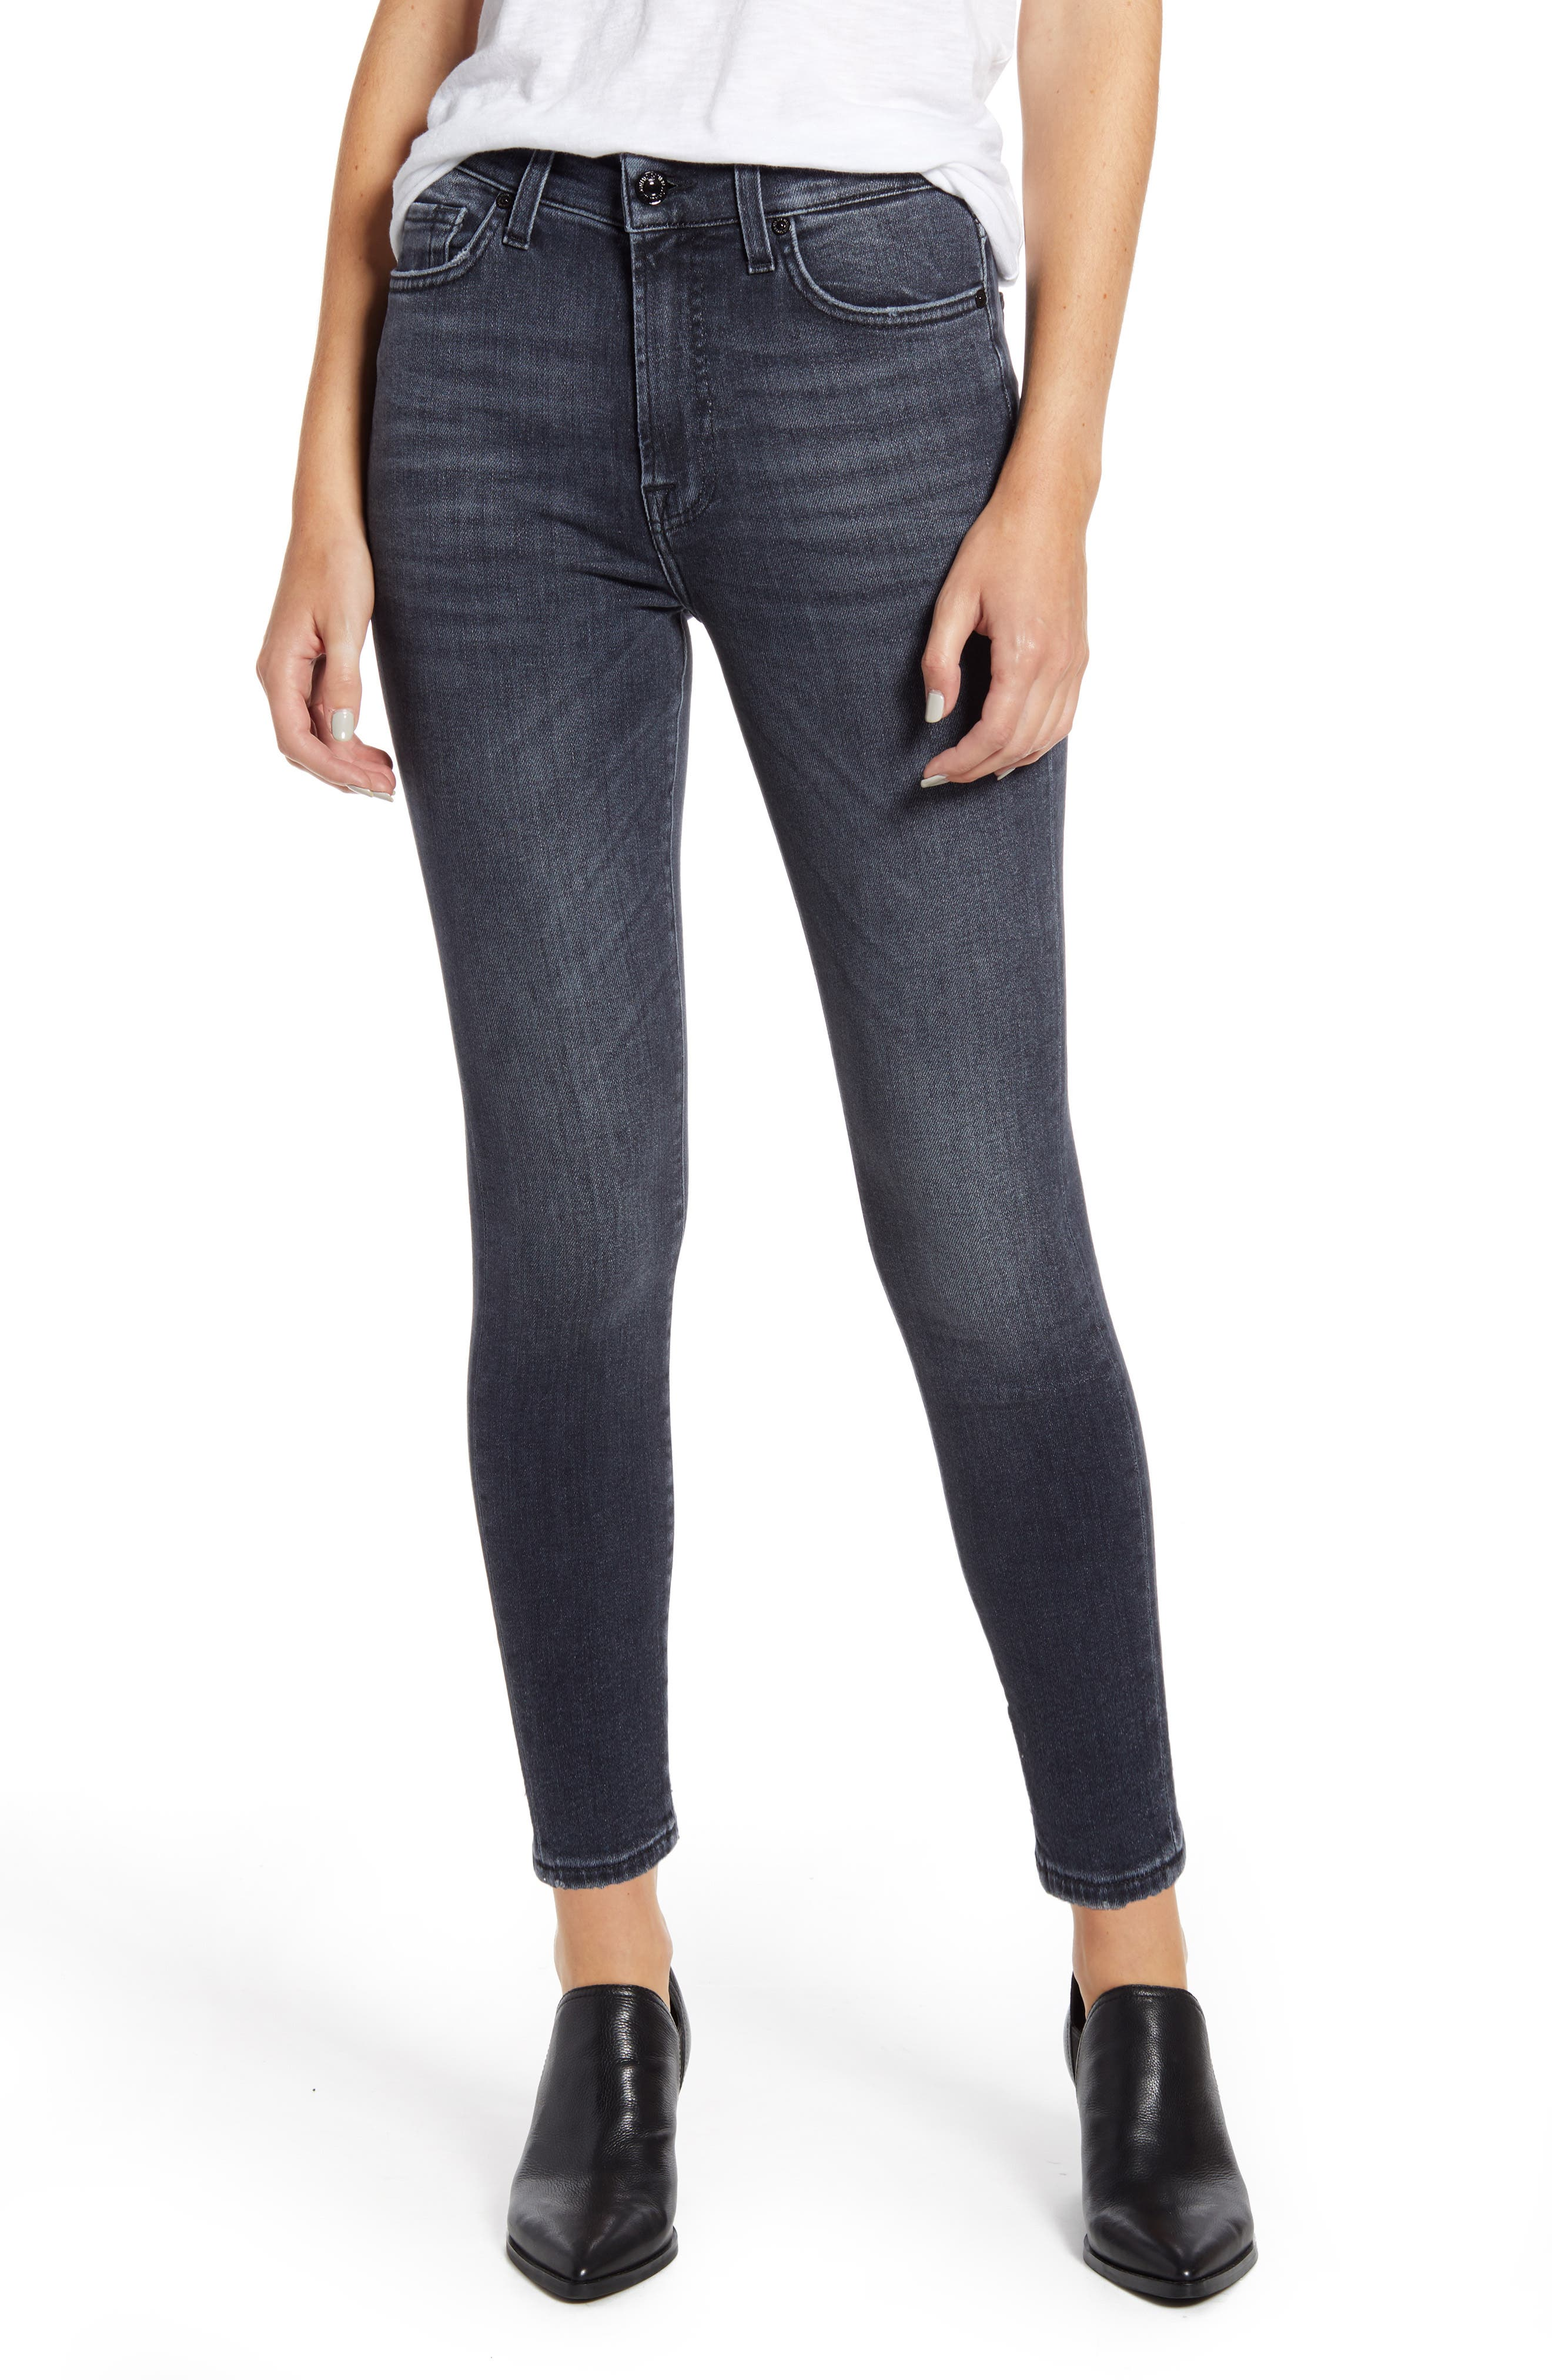 7 For All MankindR Women's 7 For All Mankind High Waist Ankle Skinny Jeans,  26 - Grey